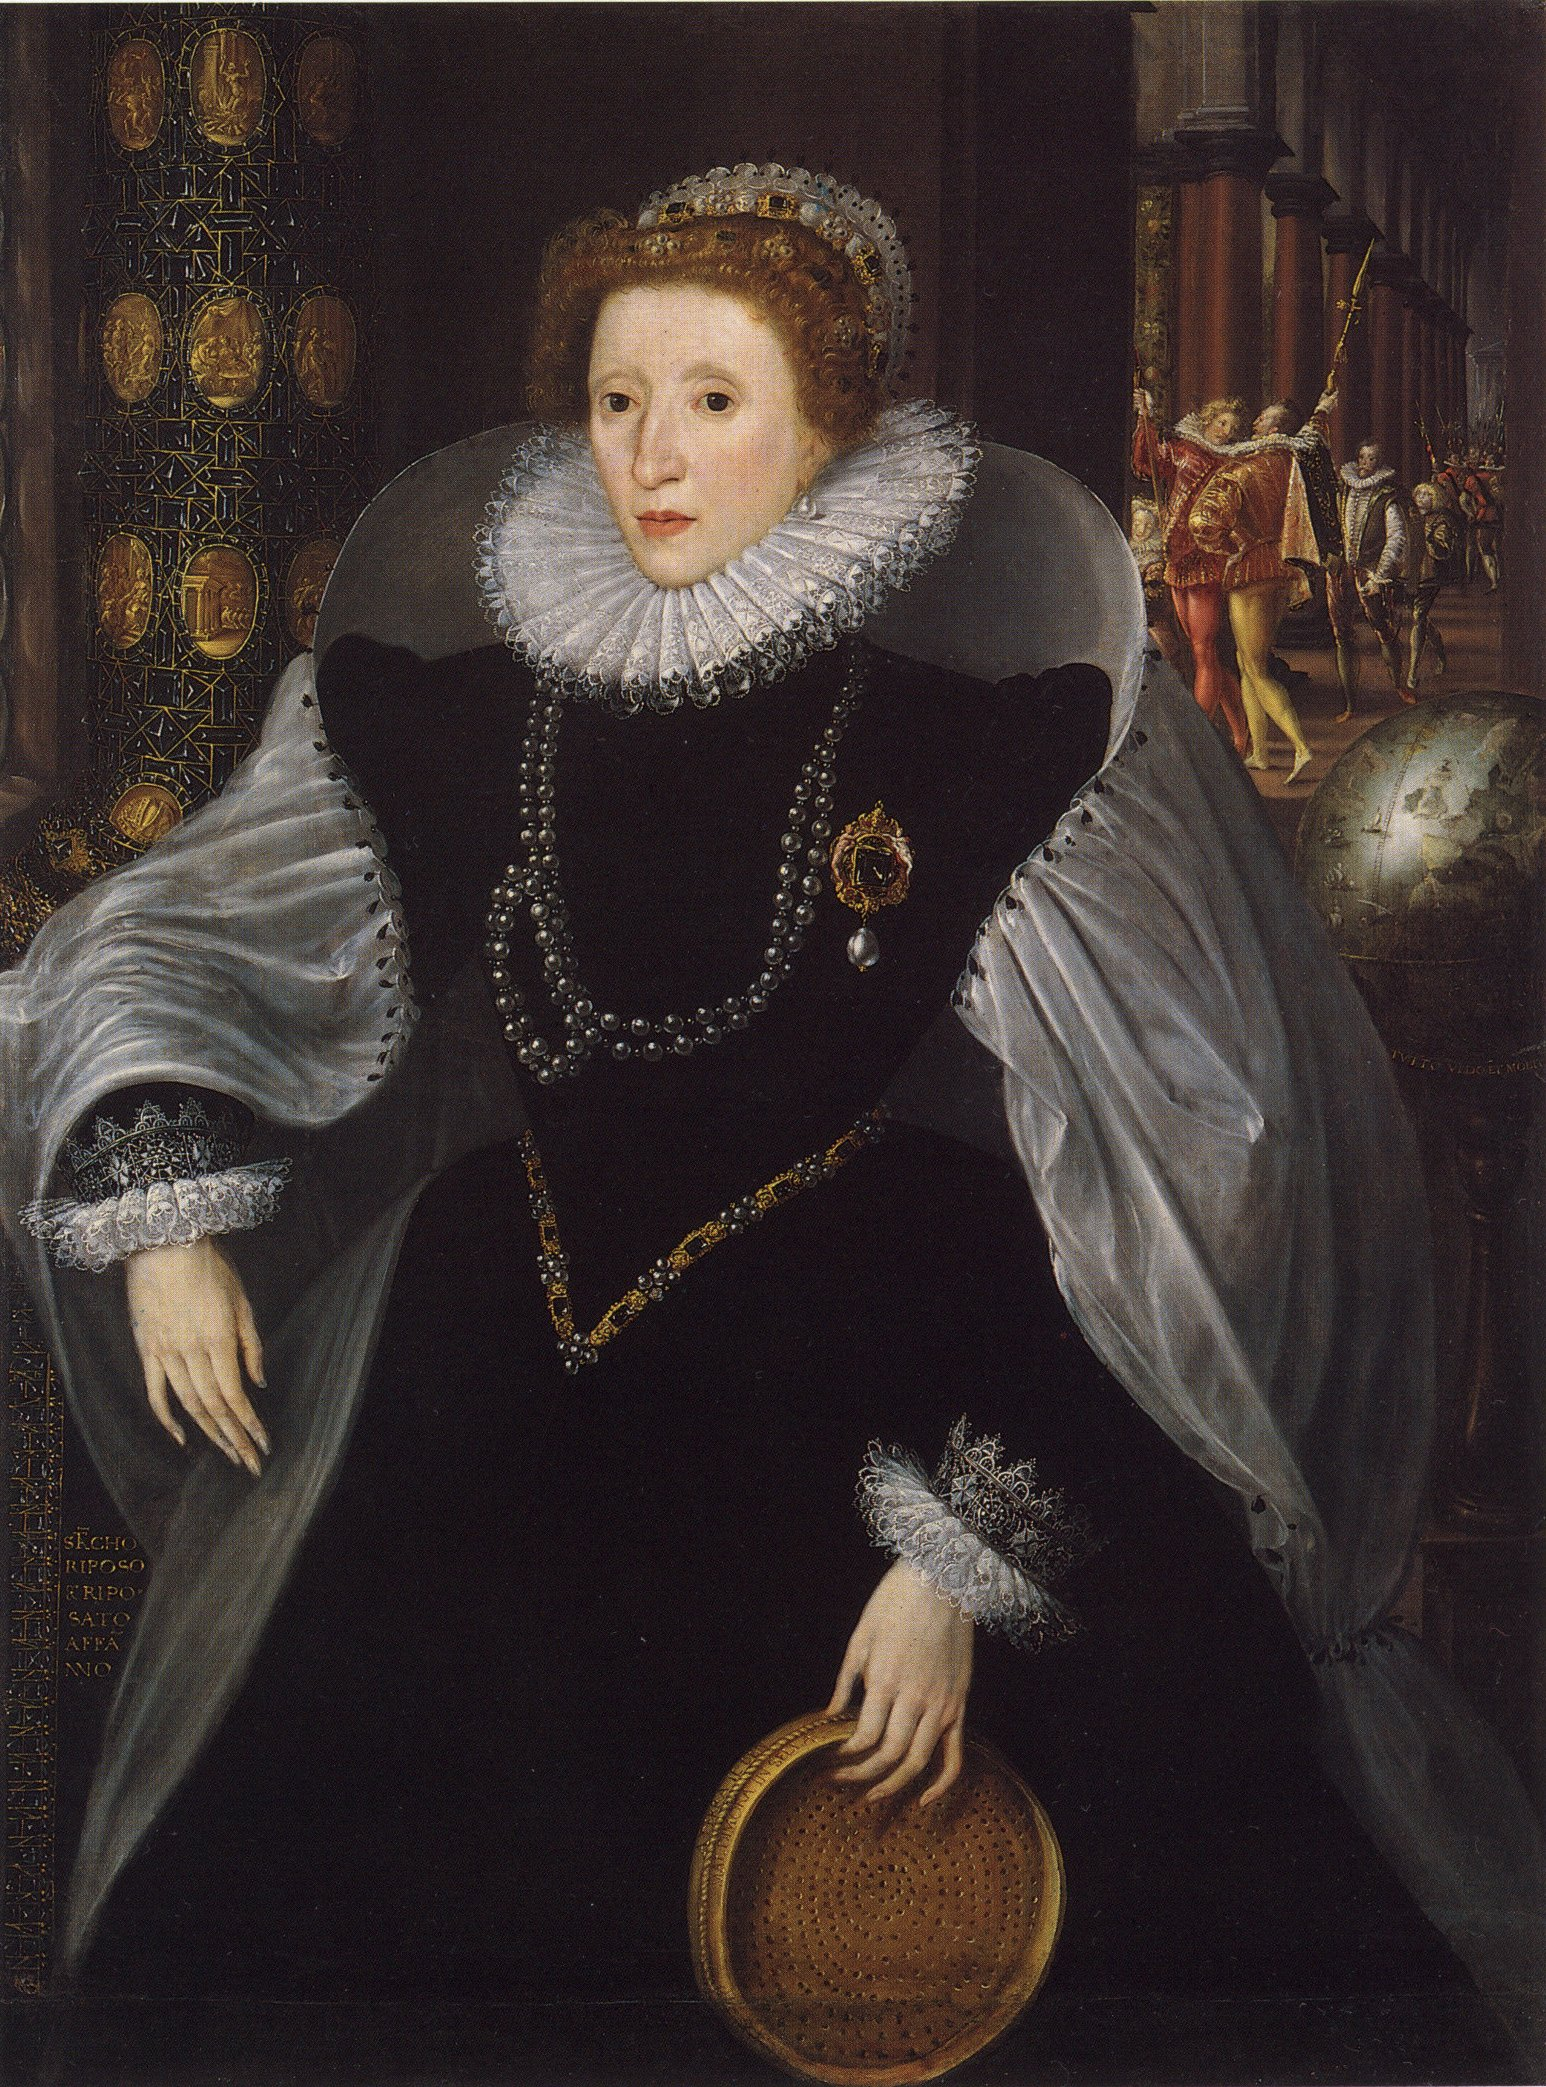 The 1583 Sieve portrait of Elizabeth I. The Sieve representes her virginity.